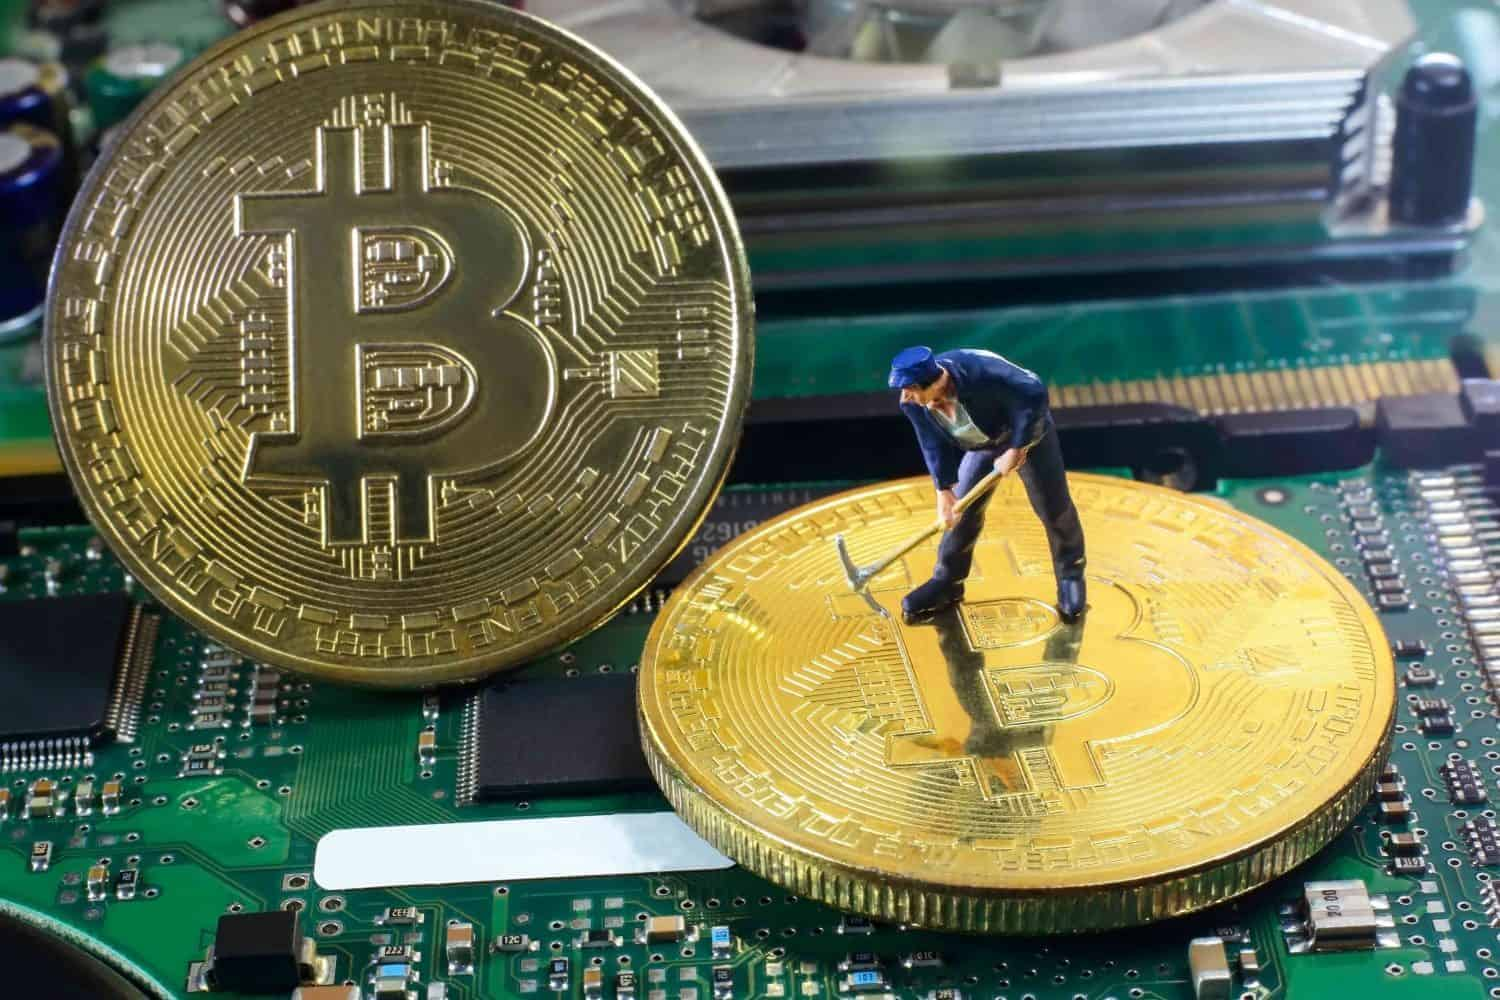 Bitcoin Mining Difficulty Hits All-Time High as Delayed ASIC Shipments Come Online